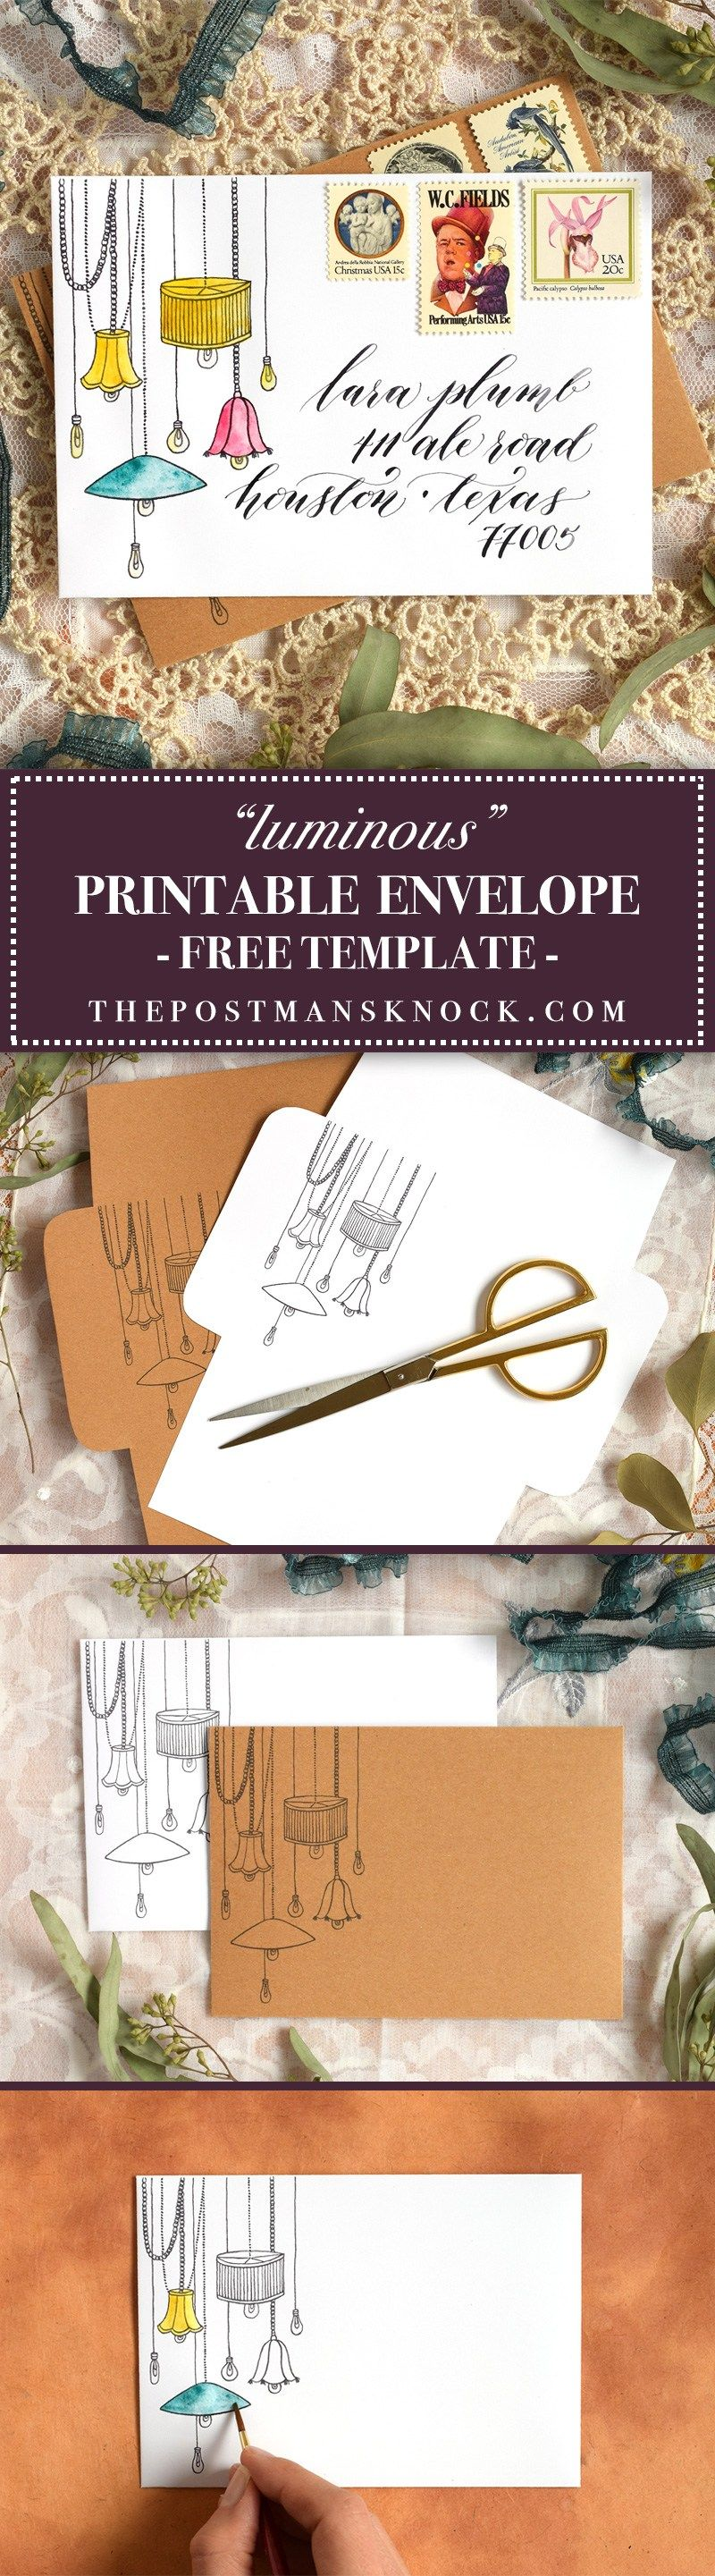 Luminous Printable Envelope Template  Envelopes Envelope Art